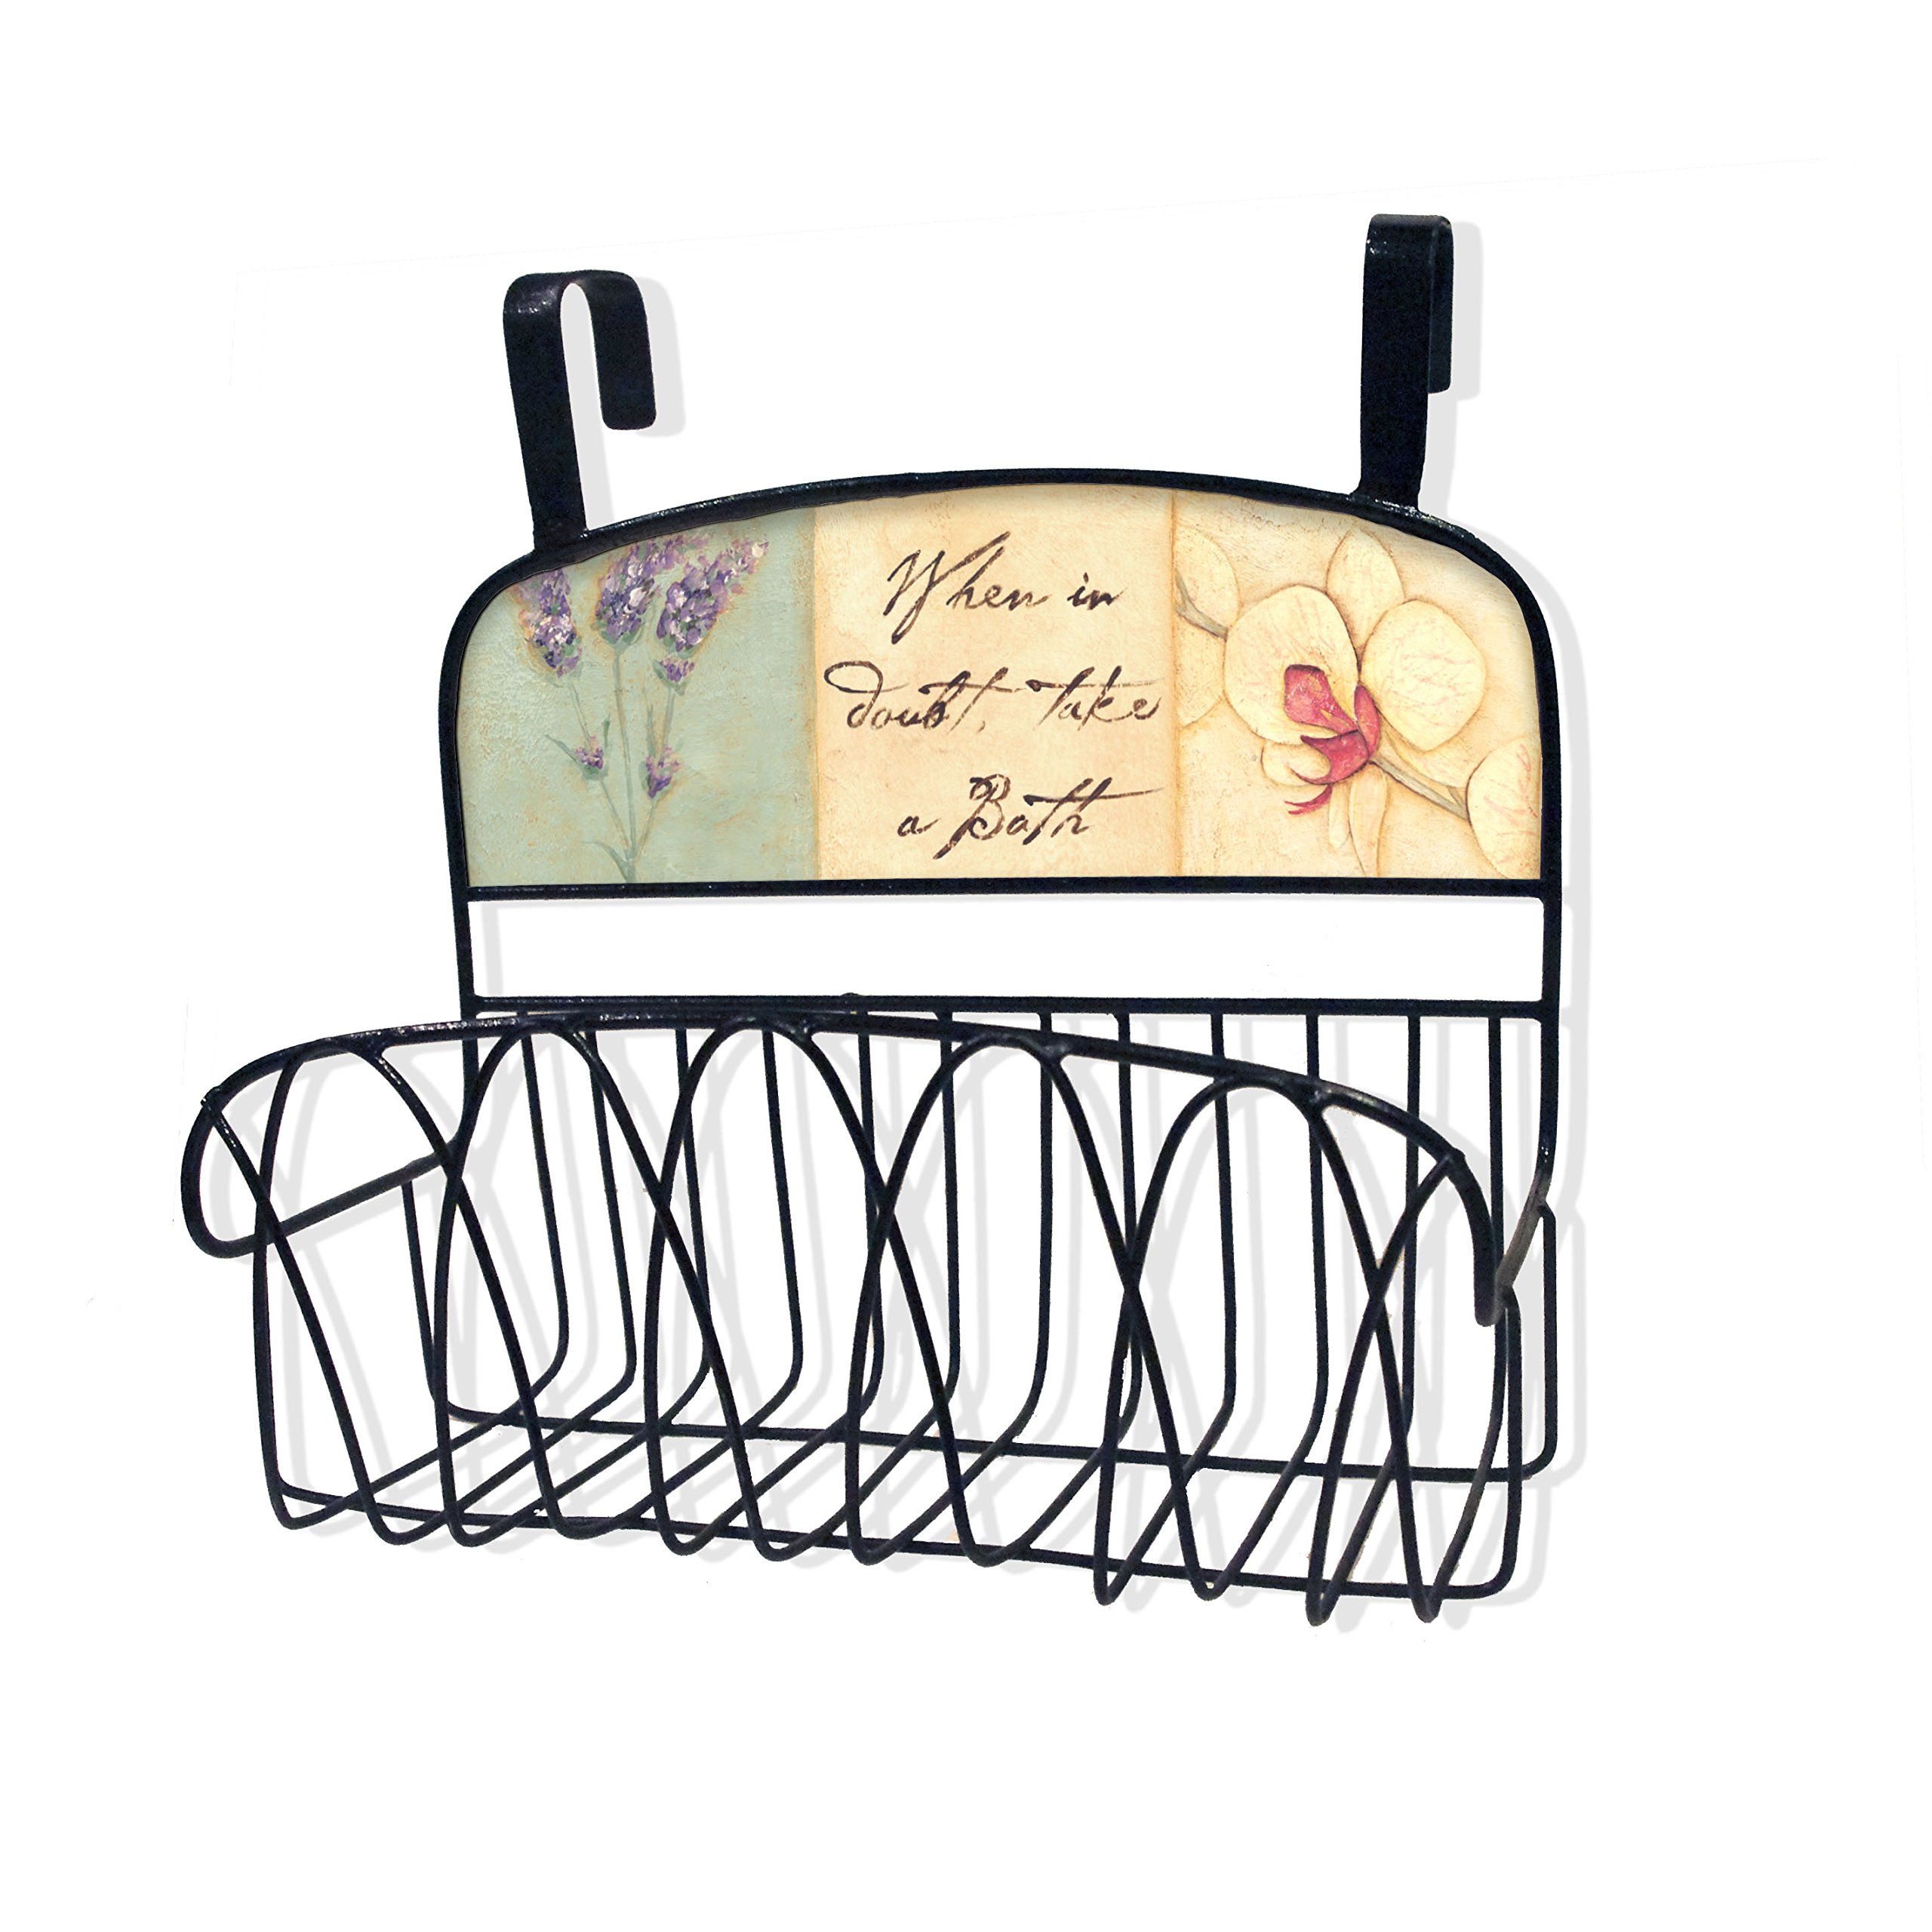 Stupell Home Décor When In Doubt Take A Bath Over The Door Organizer Basket, 11 x 11 x 6, Proudly Made in USA by The Stupell Home Decor Collection